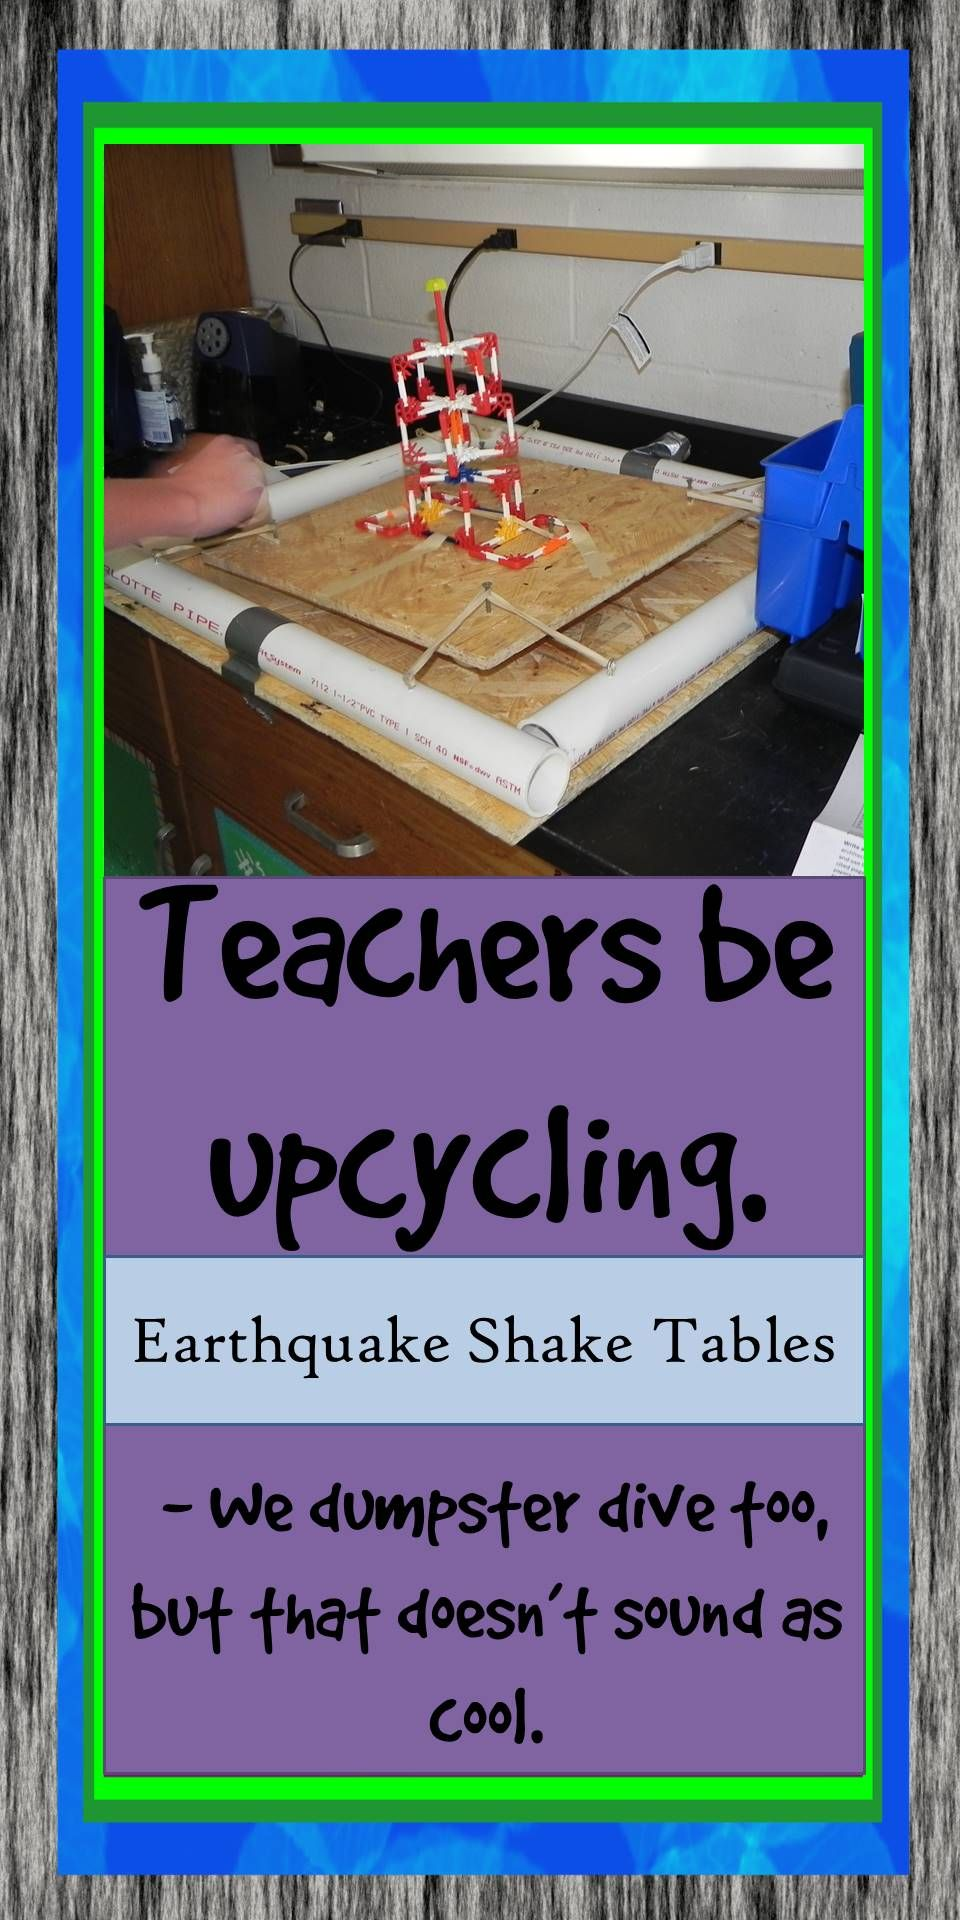 Earth Science Earthquakes Problem Based Learning Pbl Circuit Lessons For Elementary And Middle School Full Project With Student Worksheets Construction Directions More